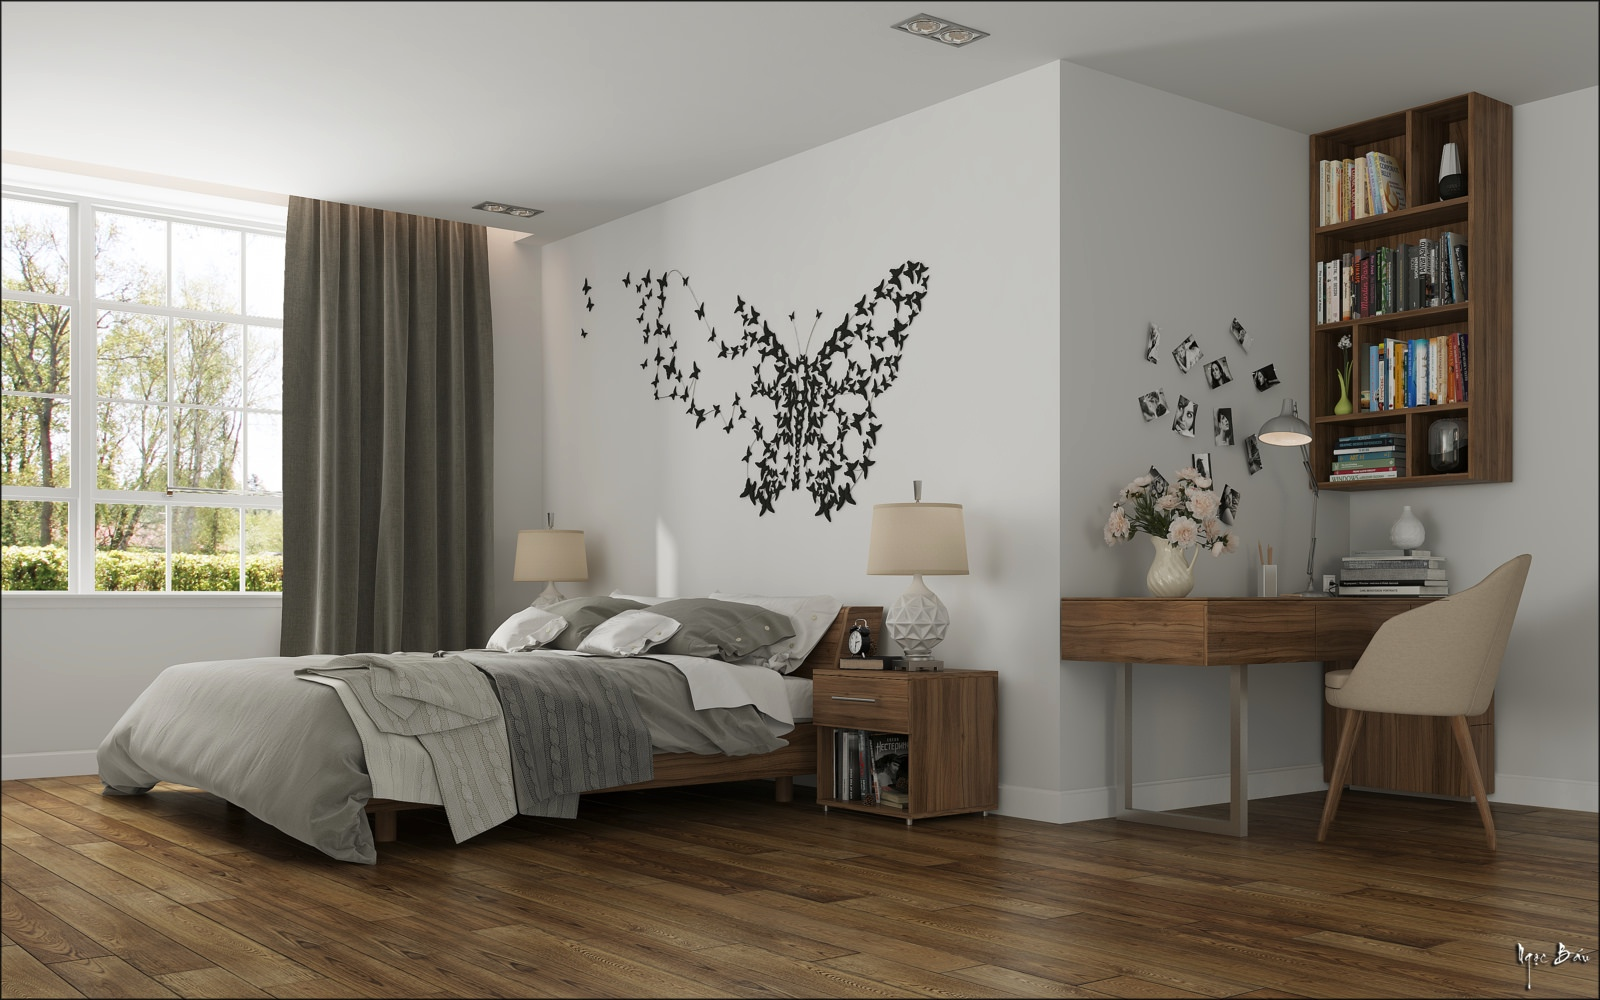 Bedroom butterfly wall art interior design ideas for Decoration interieur original